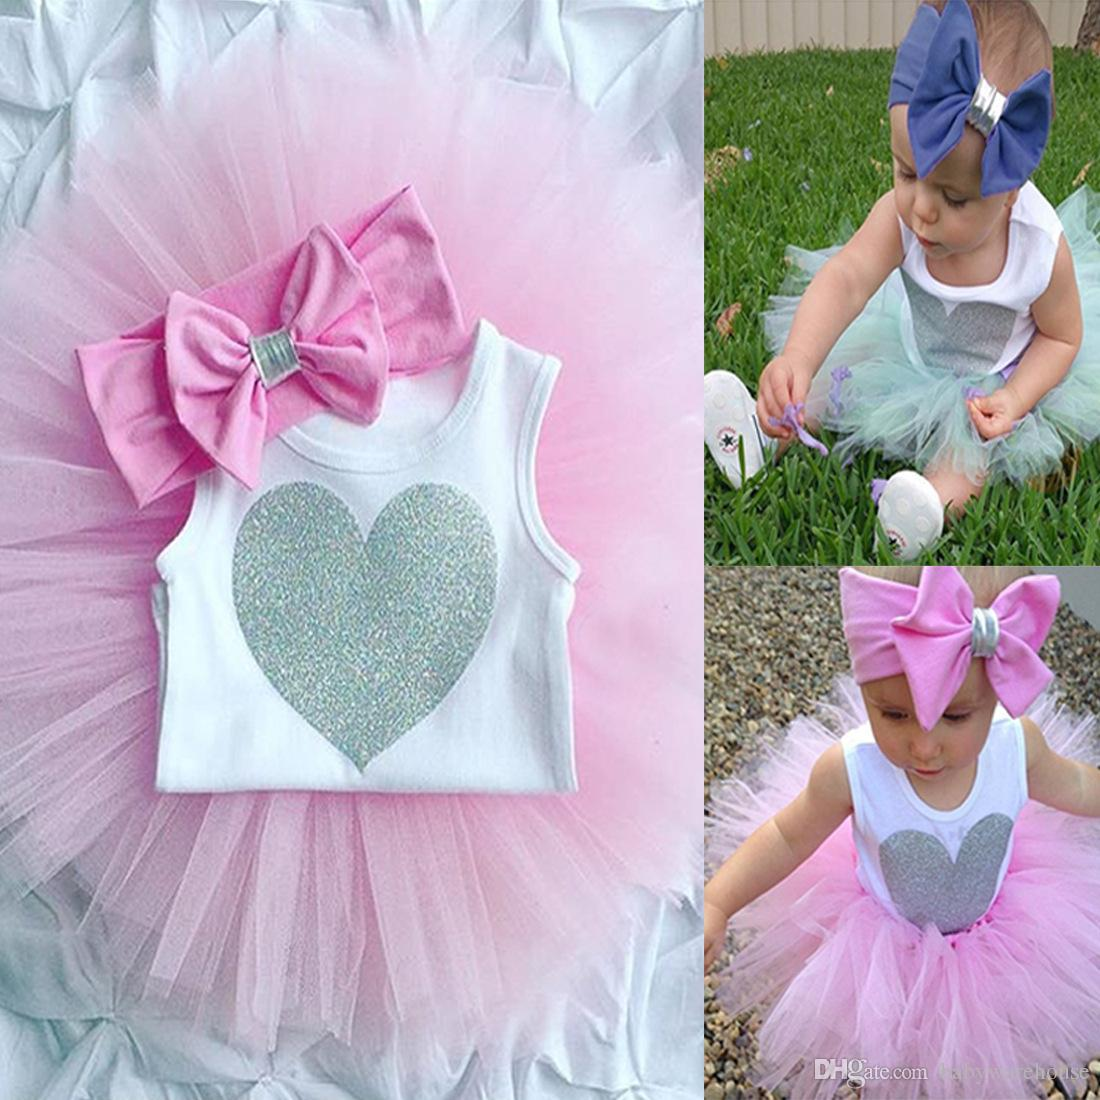 Hearty Tutu Skirt Size 2t Baby & Toddler Clothing Skirts